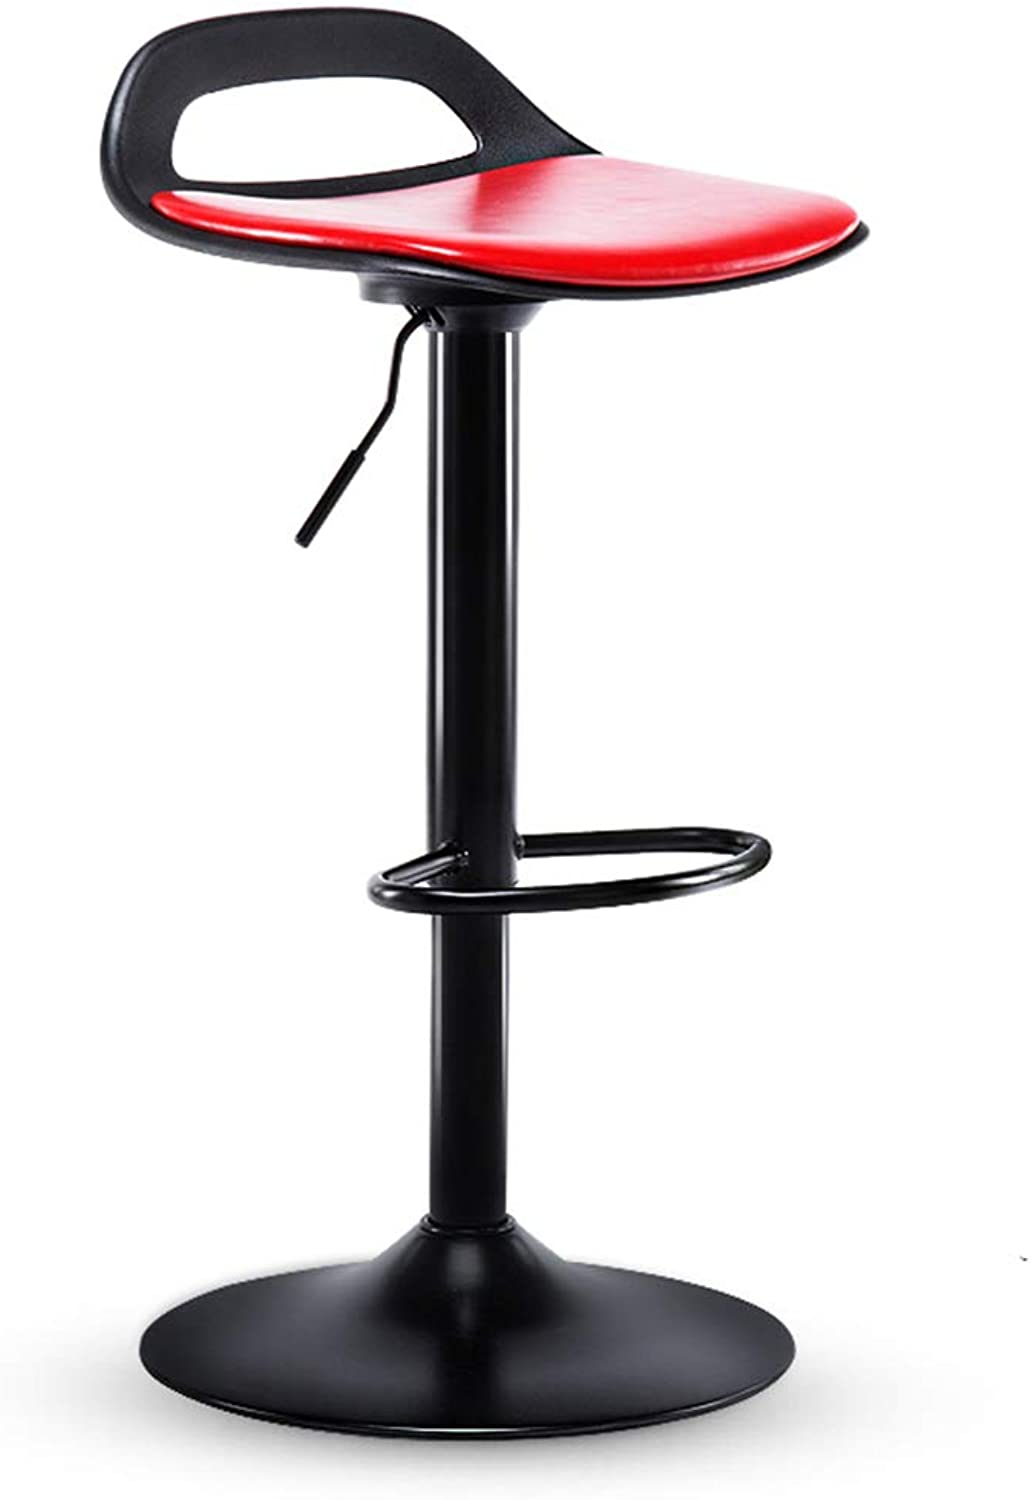 A-Fort European Fashion High Stool Bar Stool Adjustable Height Fashion Leather Bar Stool with Backrest Back redating Chair Leisure Seat (color   Black 2)